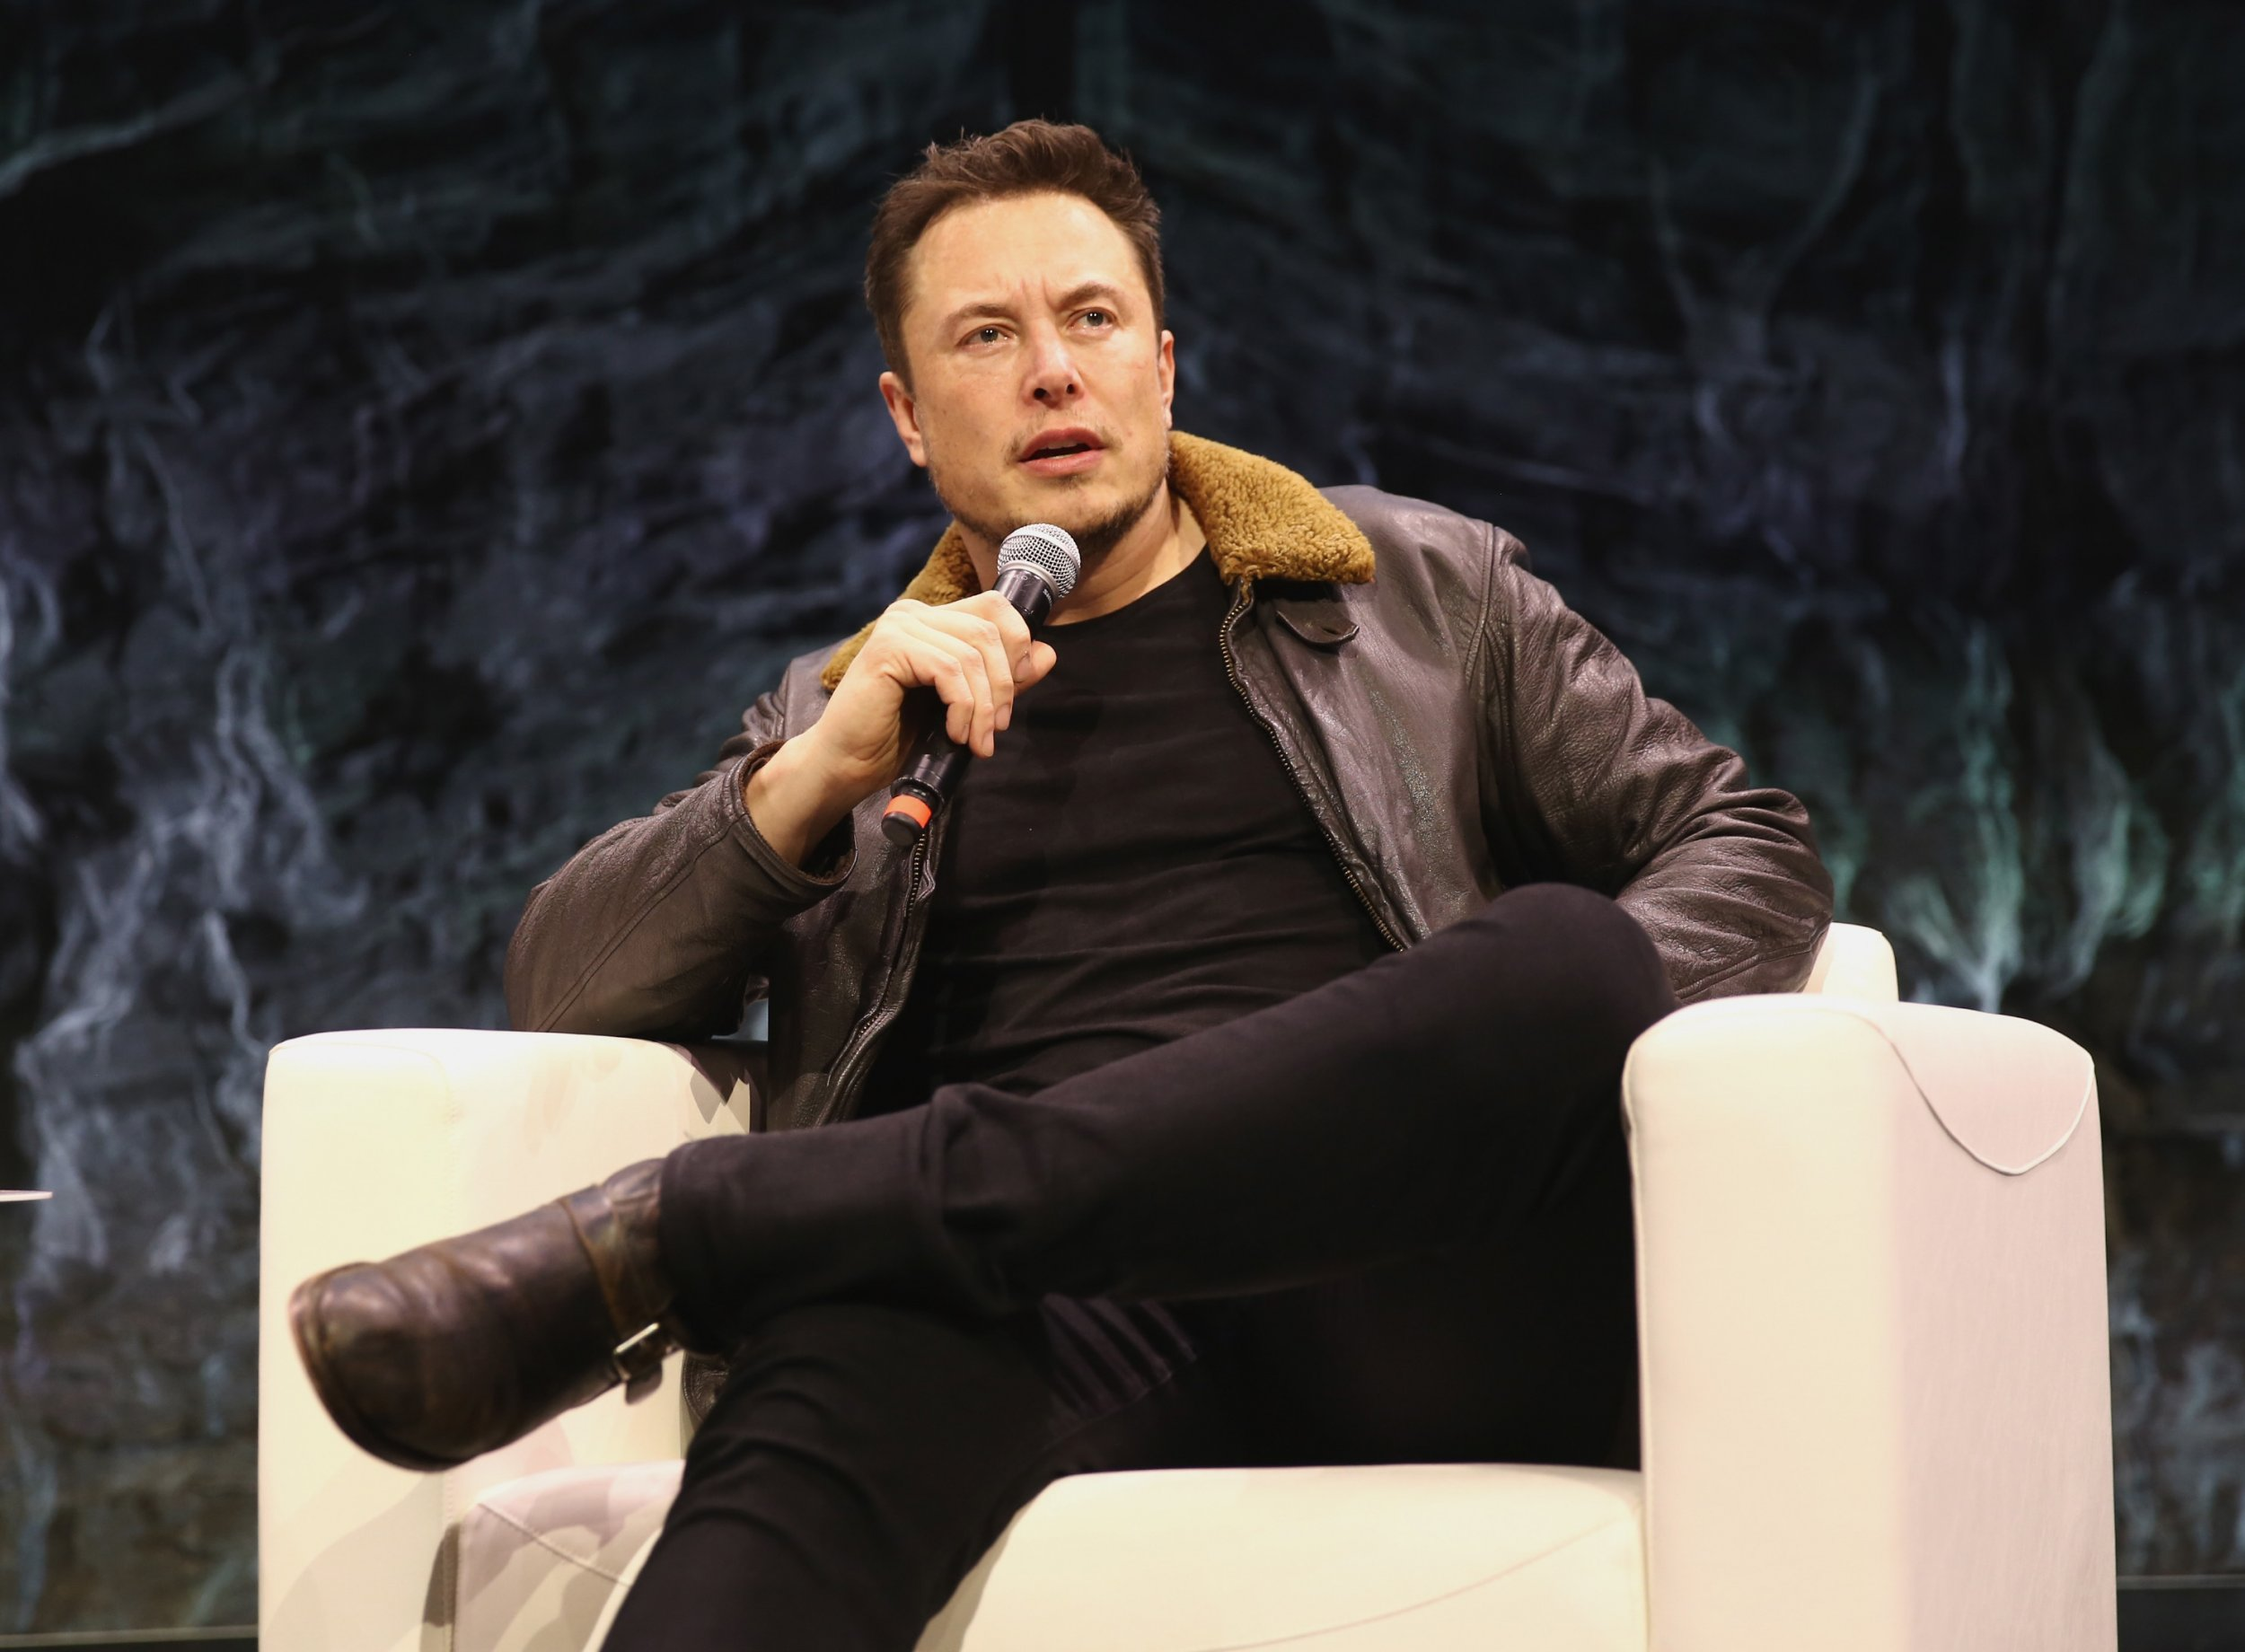 Elon Musks on Not Owning a Tesla